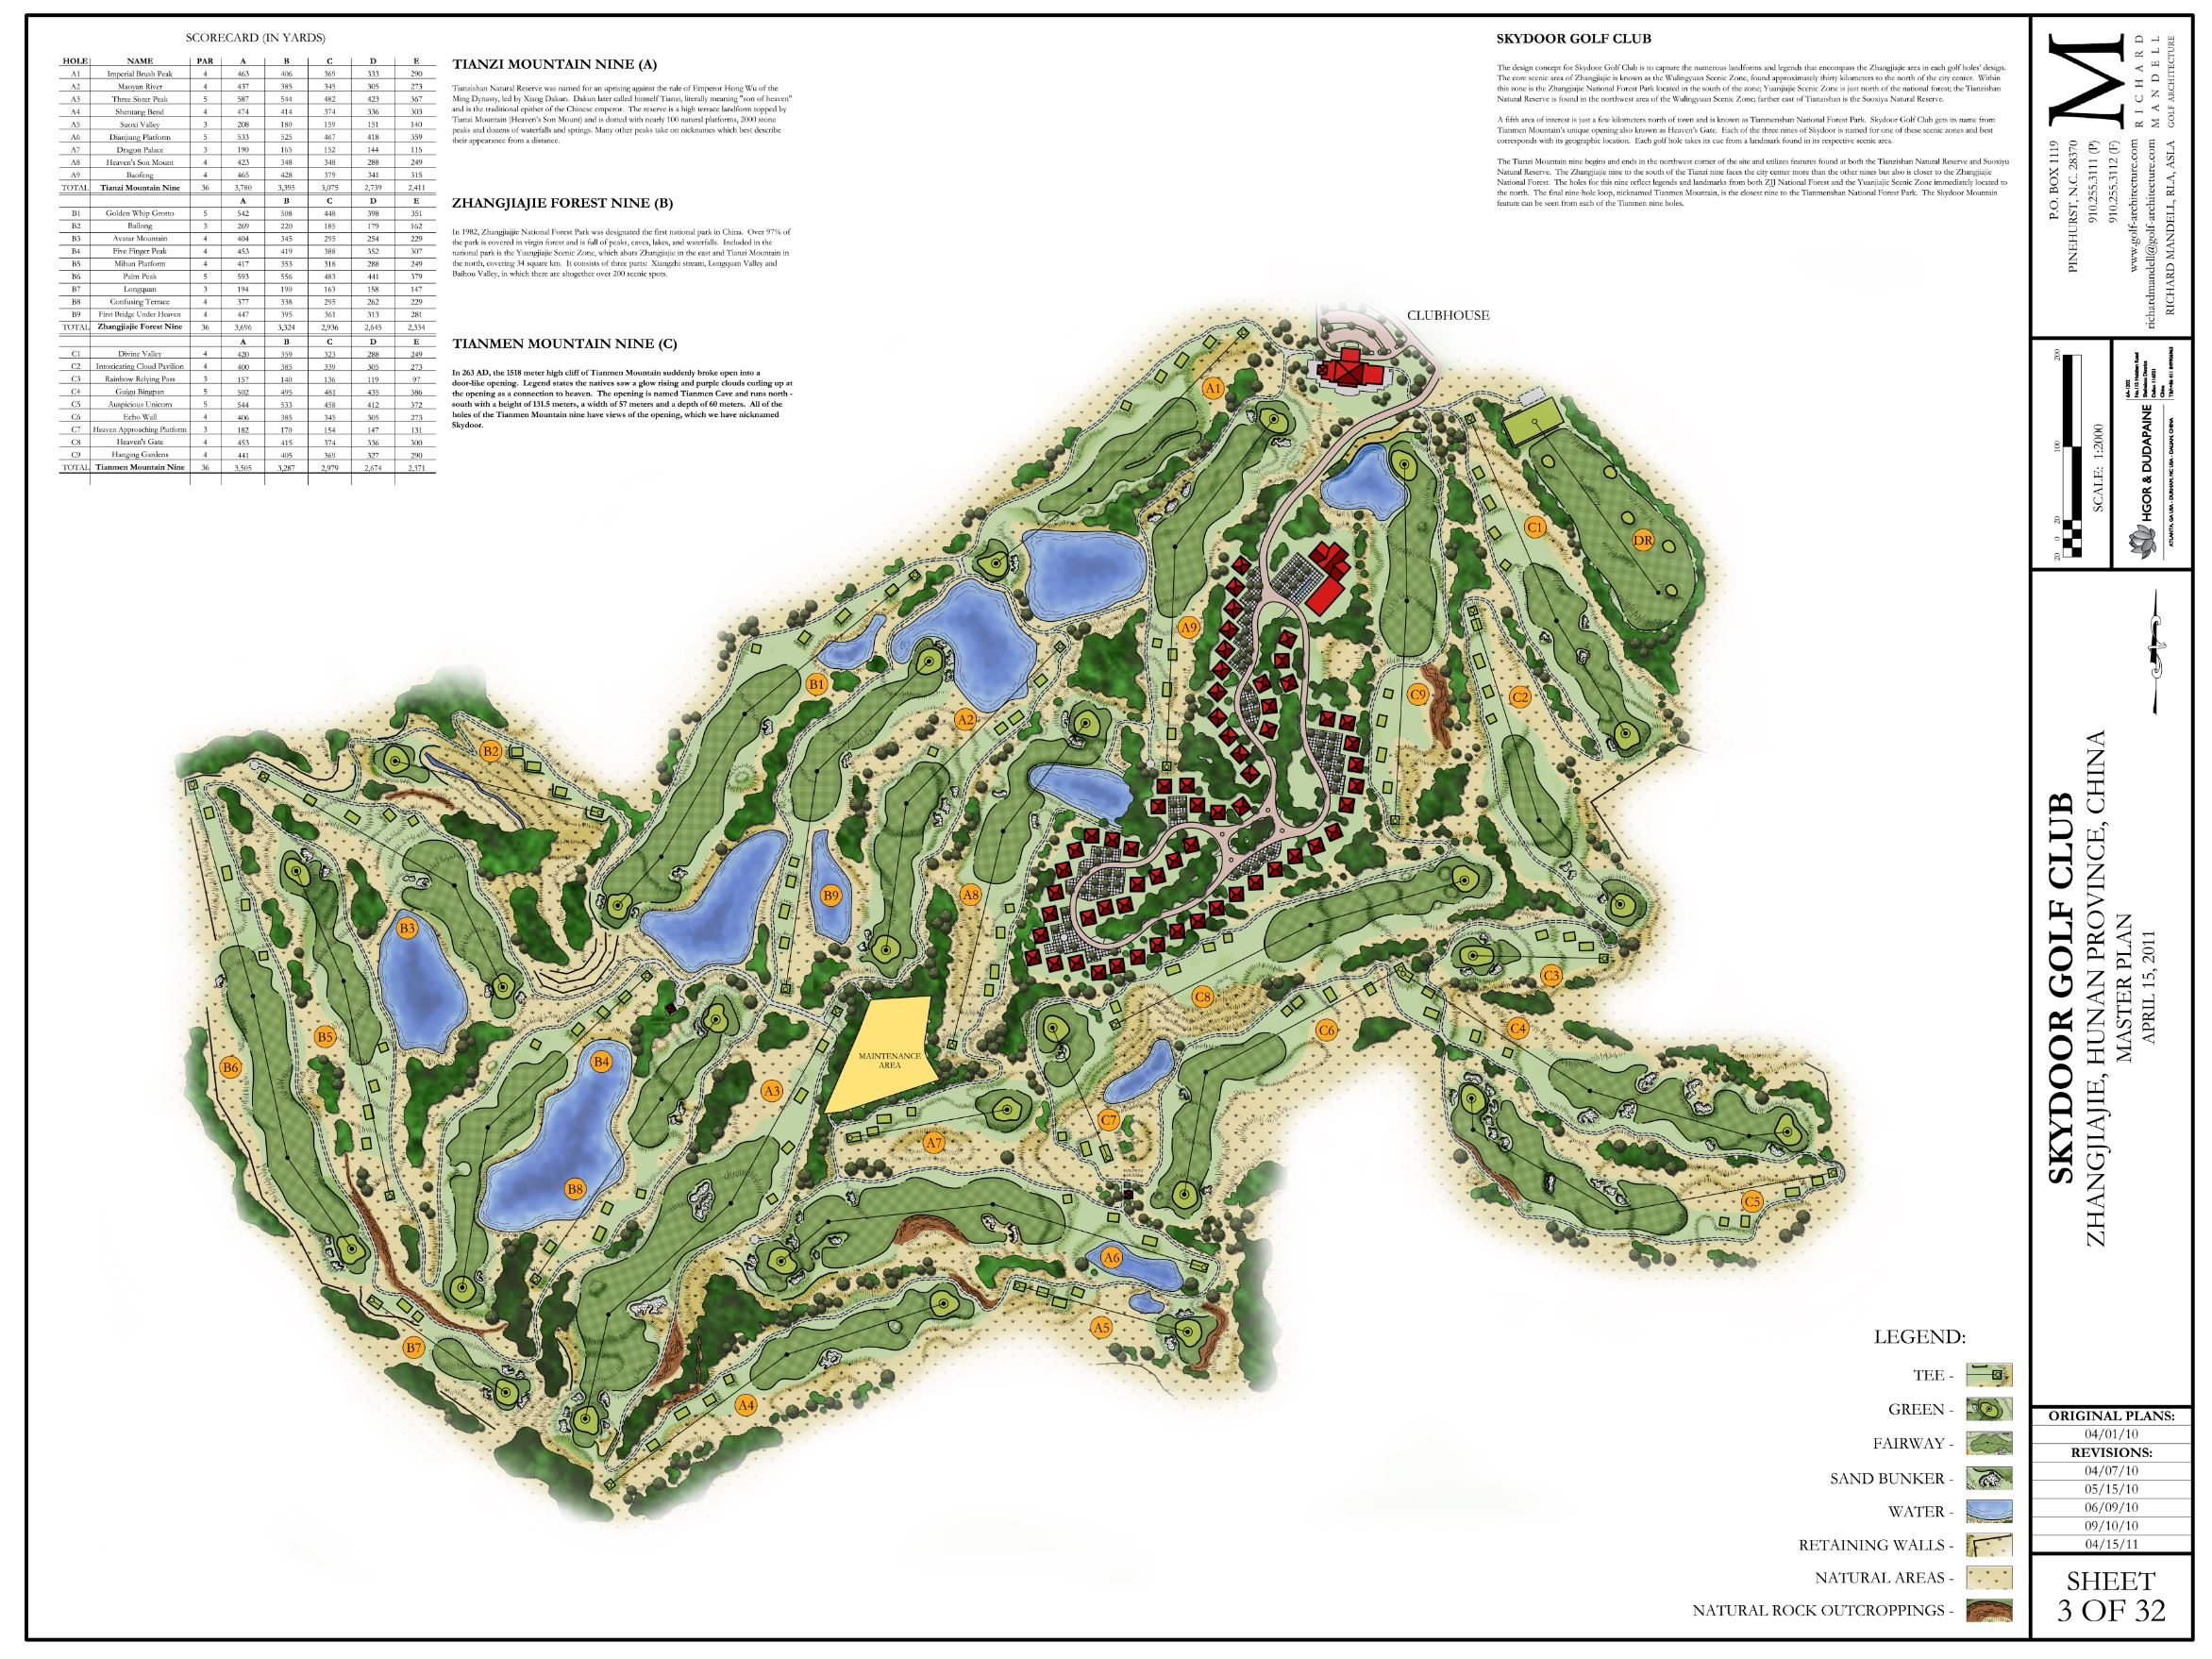 Skydoor Golf Course Master Plan